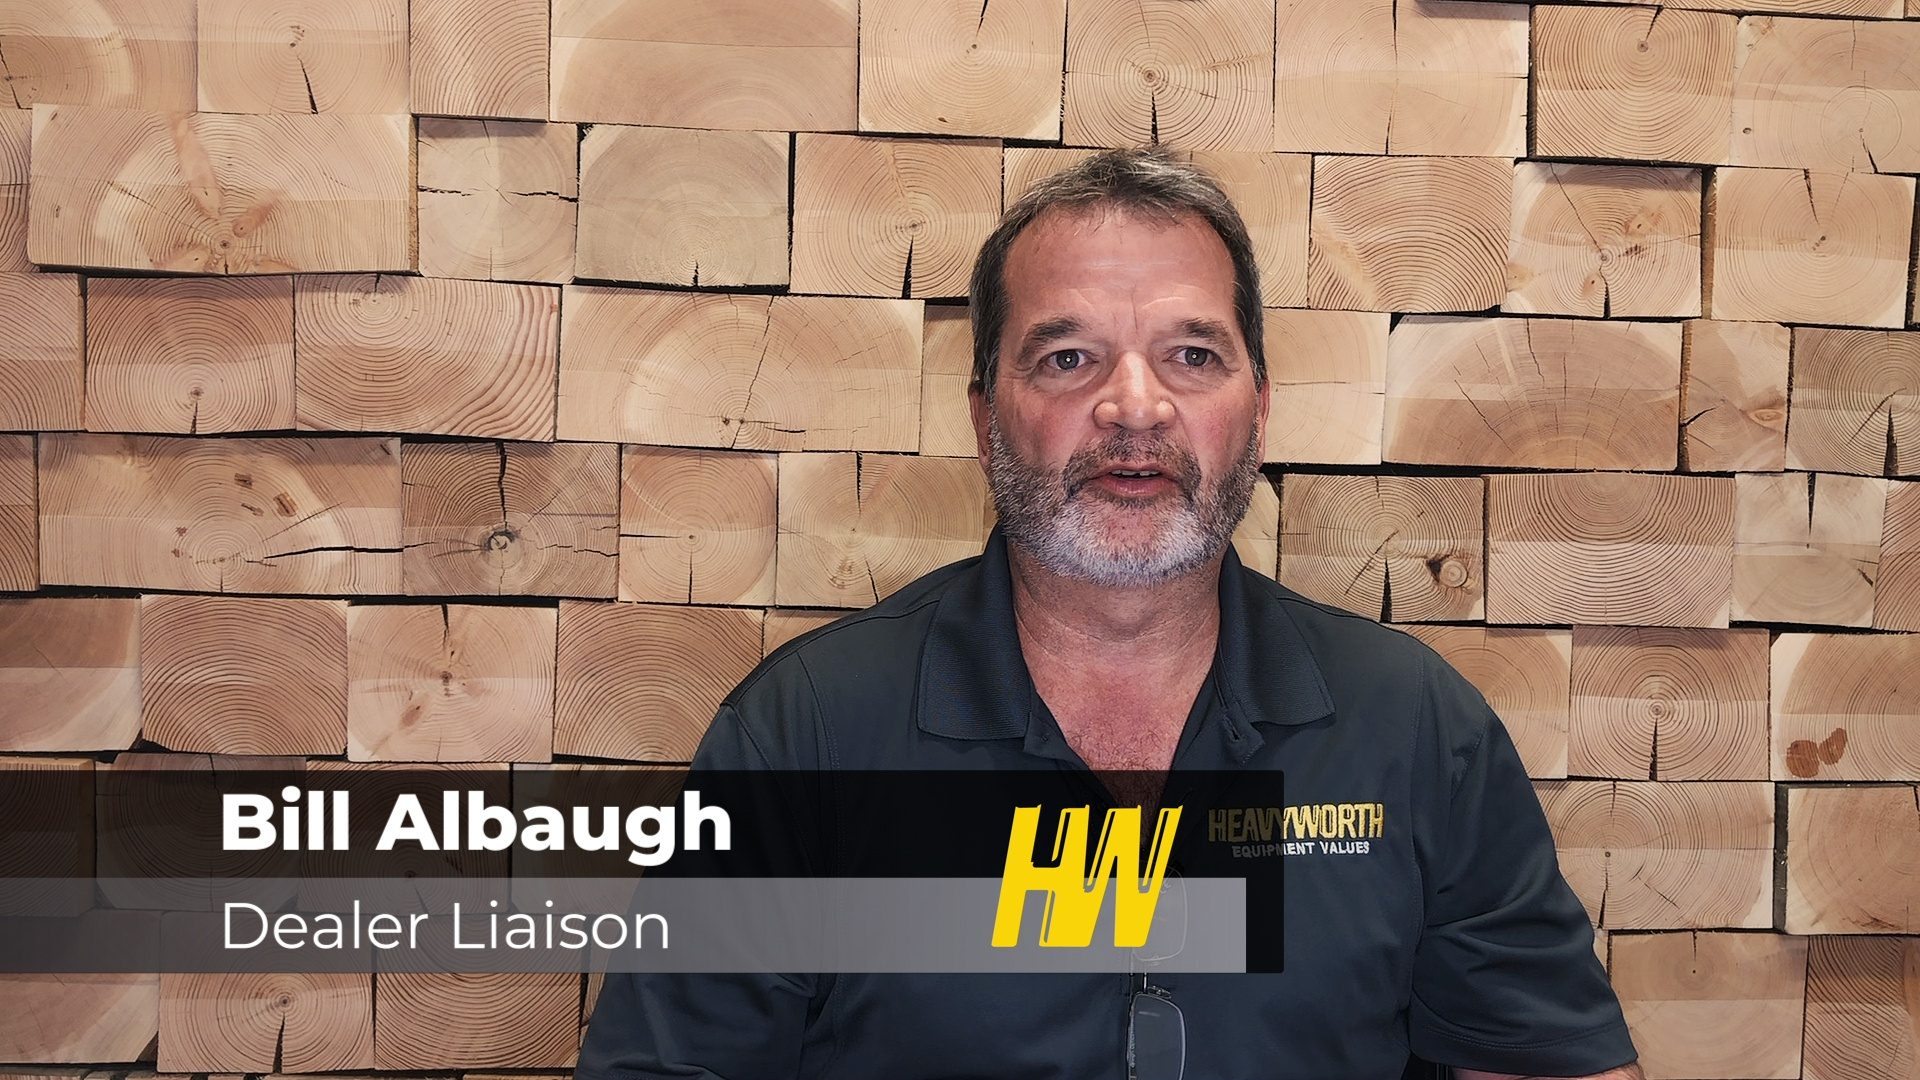 Bill Albaugh explains time frame considerations when valuing equipment